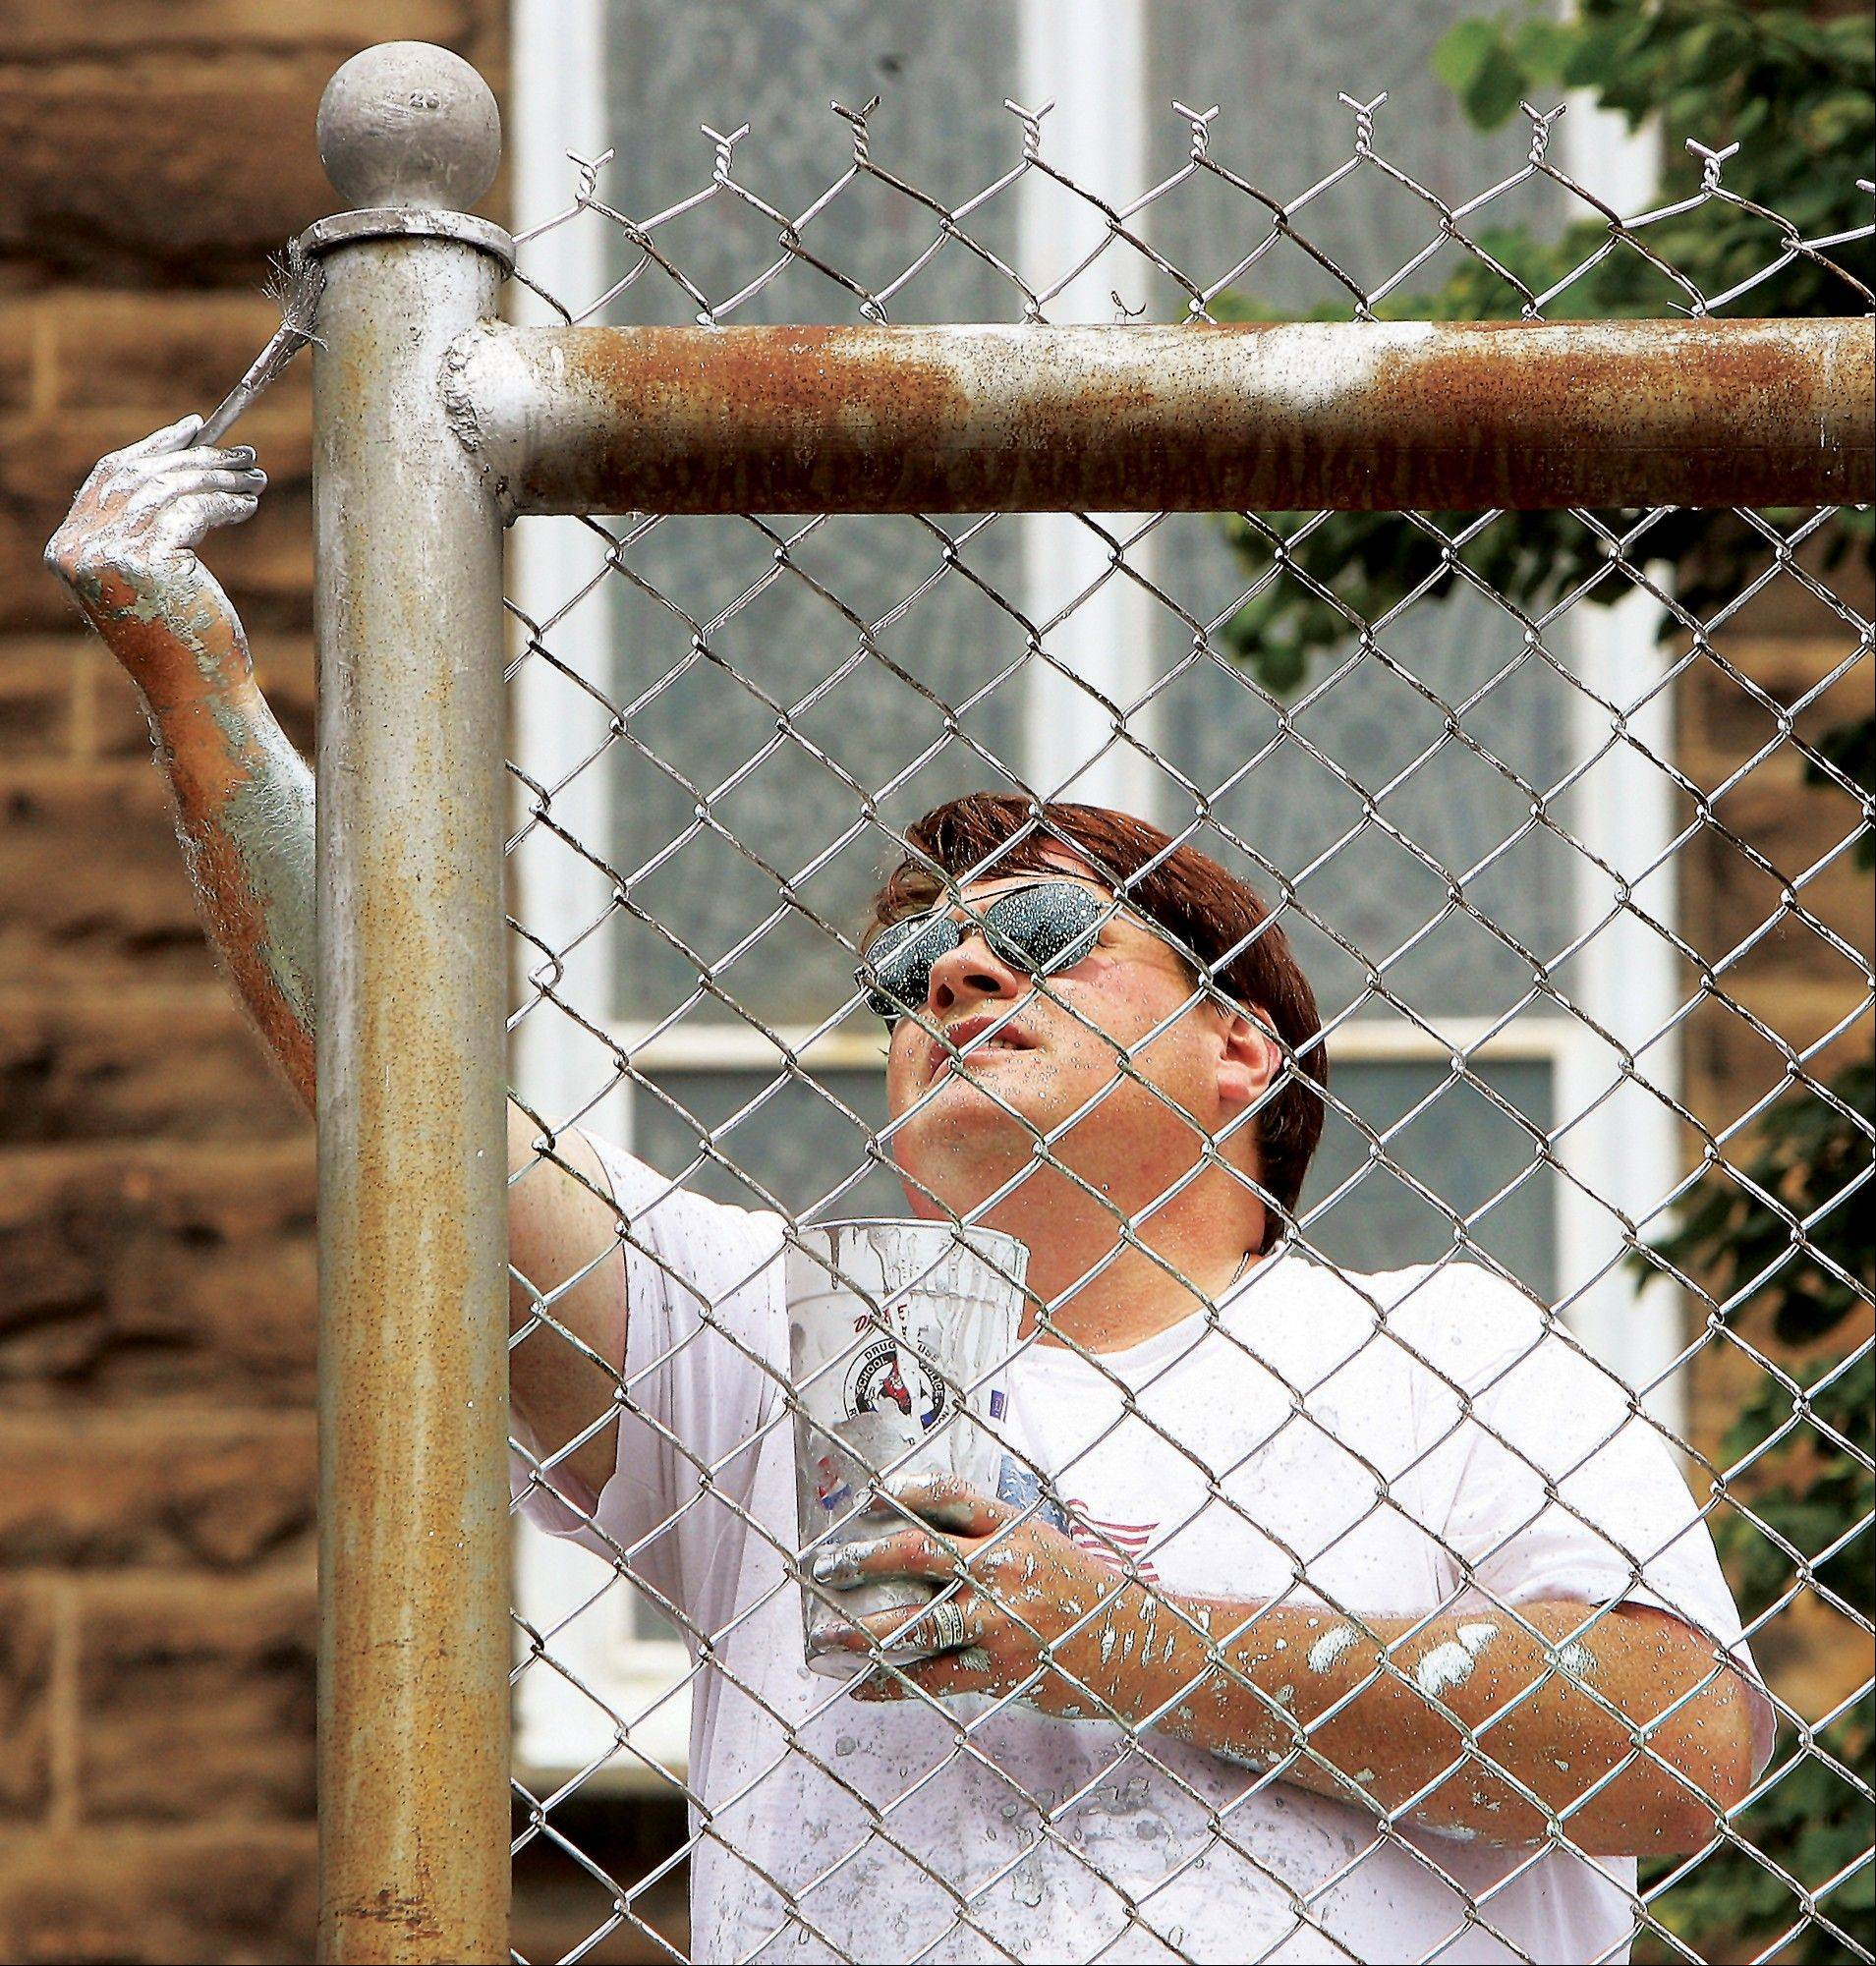 Scott Wade of Alton uses silver paint Tuesday to paint the fencing behind the basketball hoop on the playground of St. Mary's School.